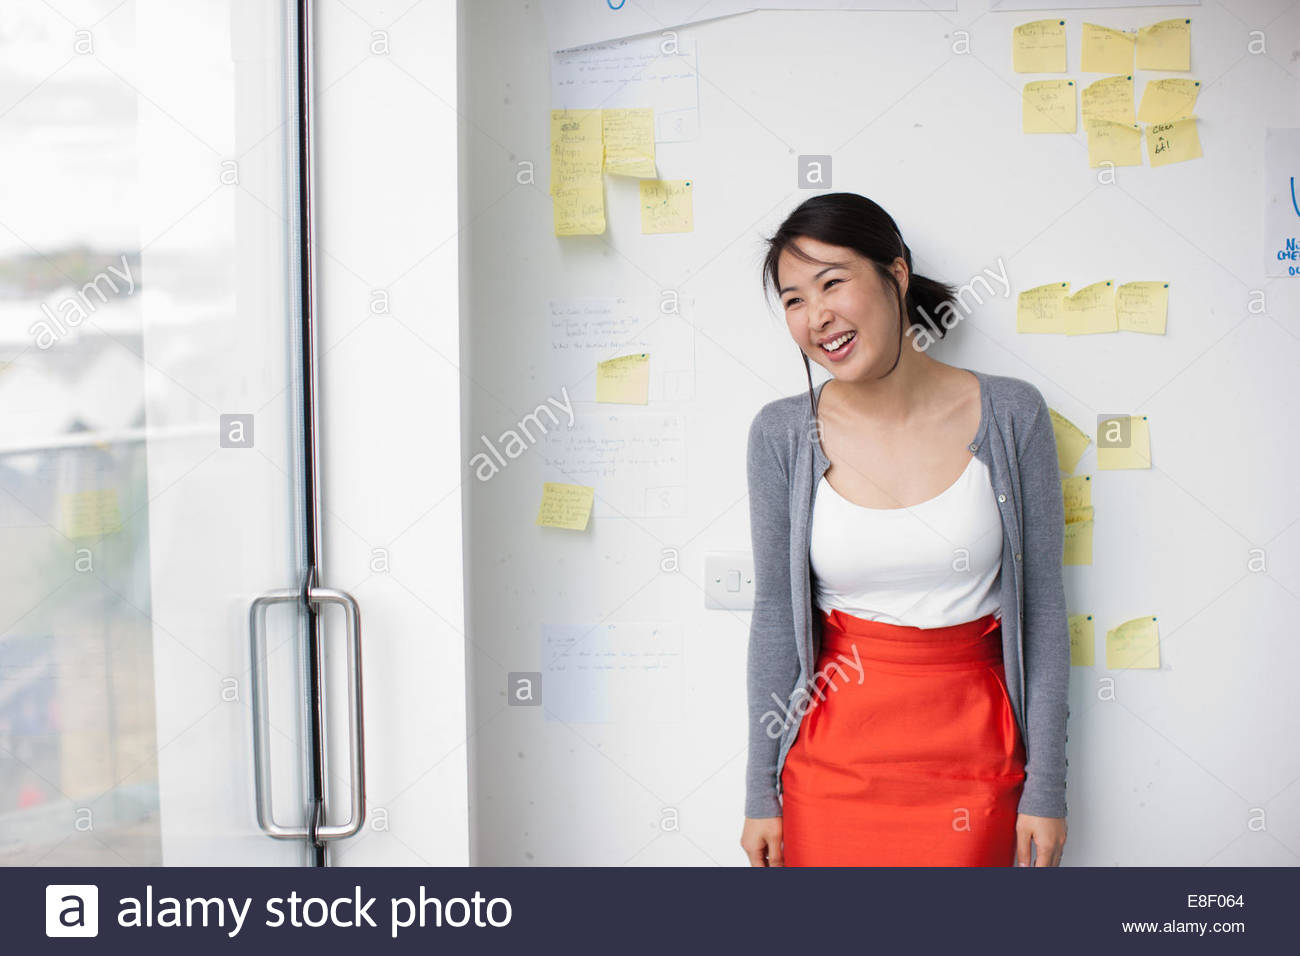 Smiling businesswoman with in front of whiteboard with adhesive notes Stock Foto